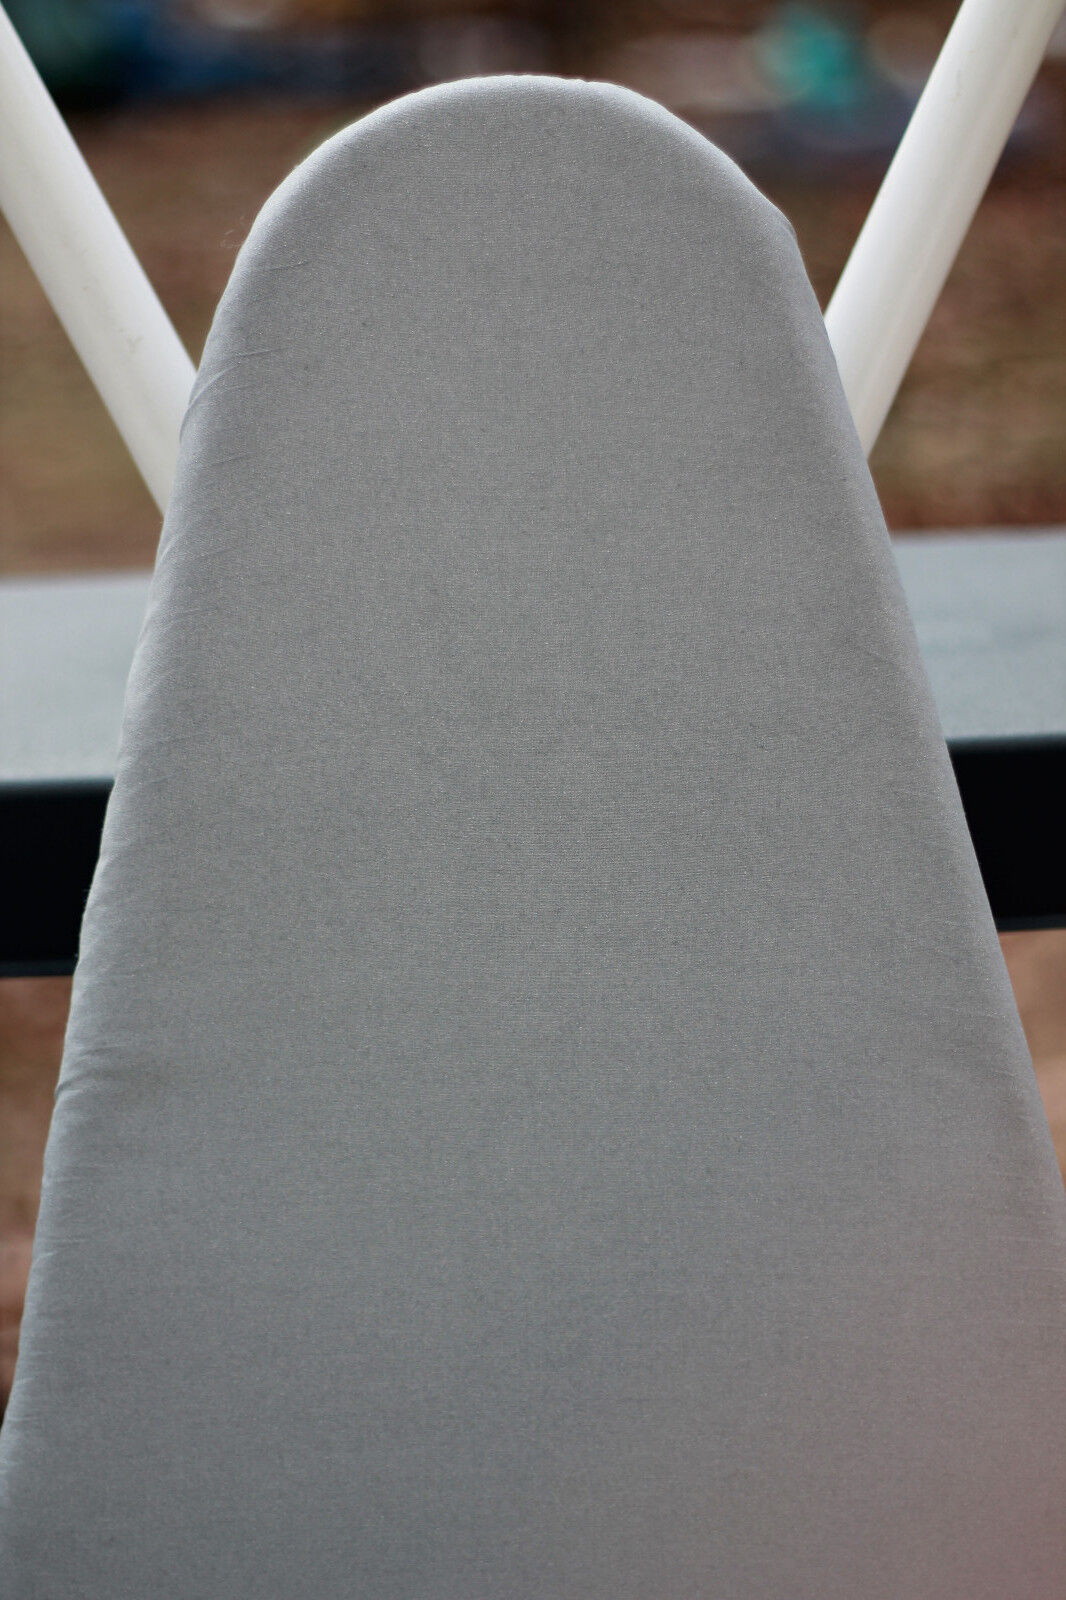 CHECKYS DEALS STANDARD 15 X 55 SILVER SILICONE IRONING BOARD